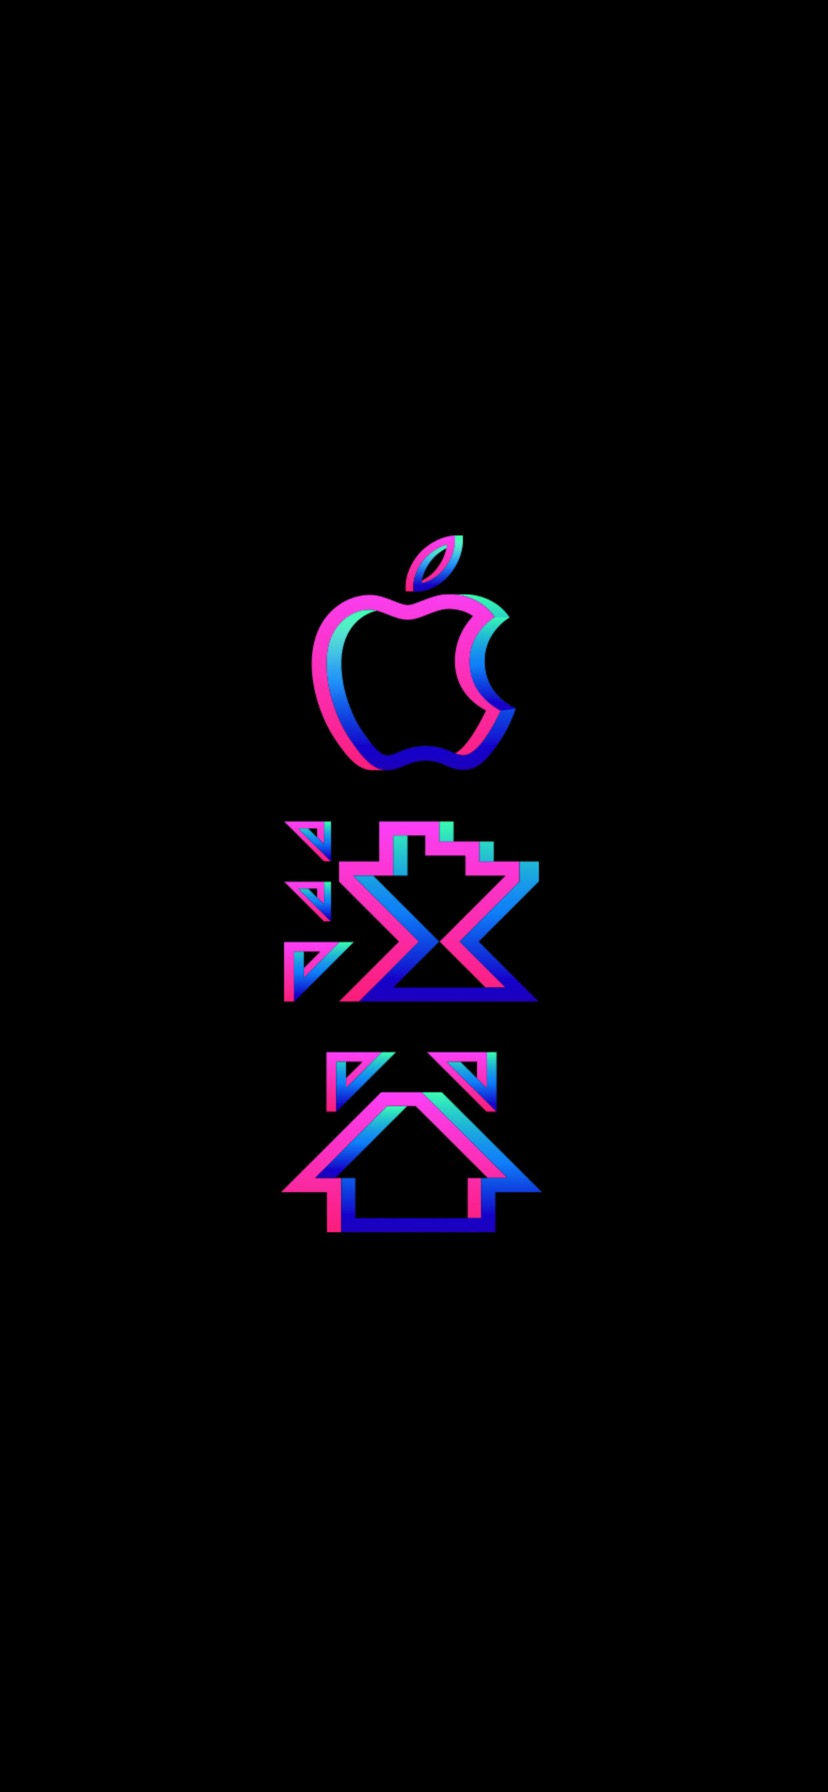 iPhone XR 壁紙 wallpaper 1098